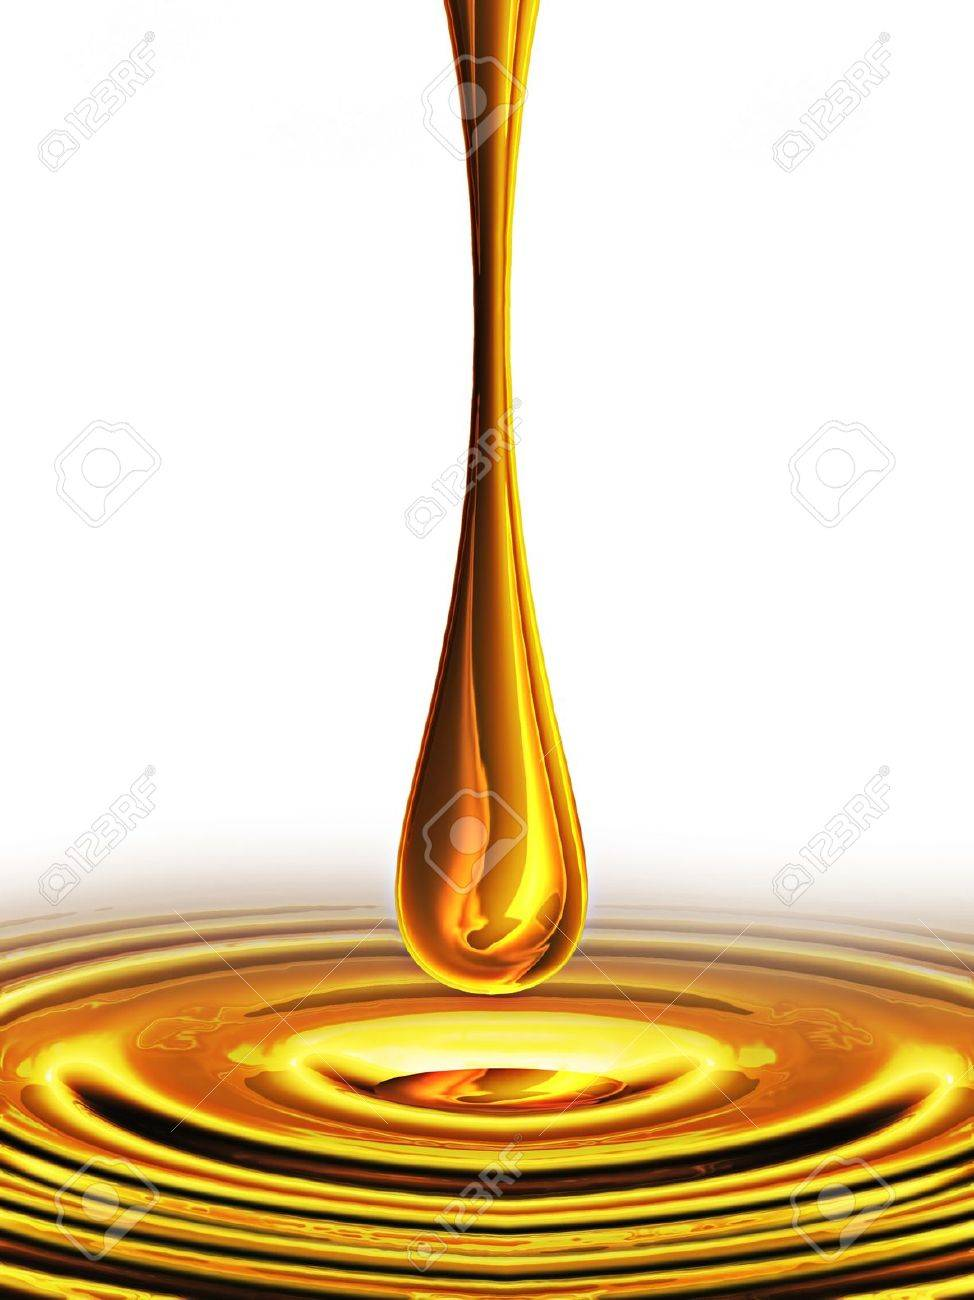 falling drop of oil on a white background - 10615319